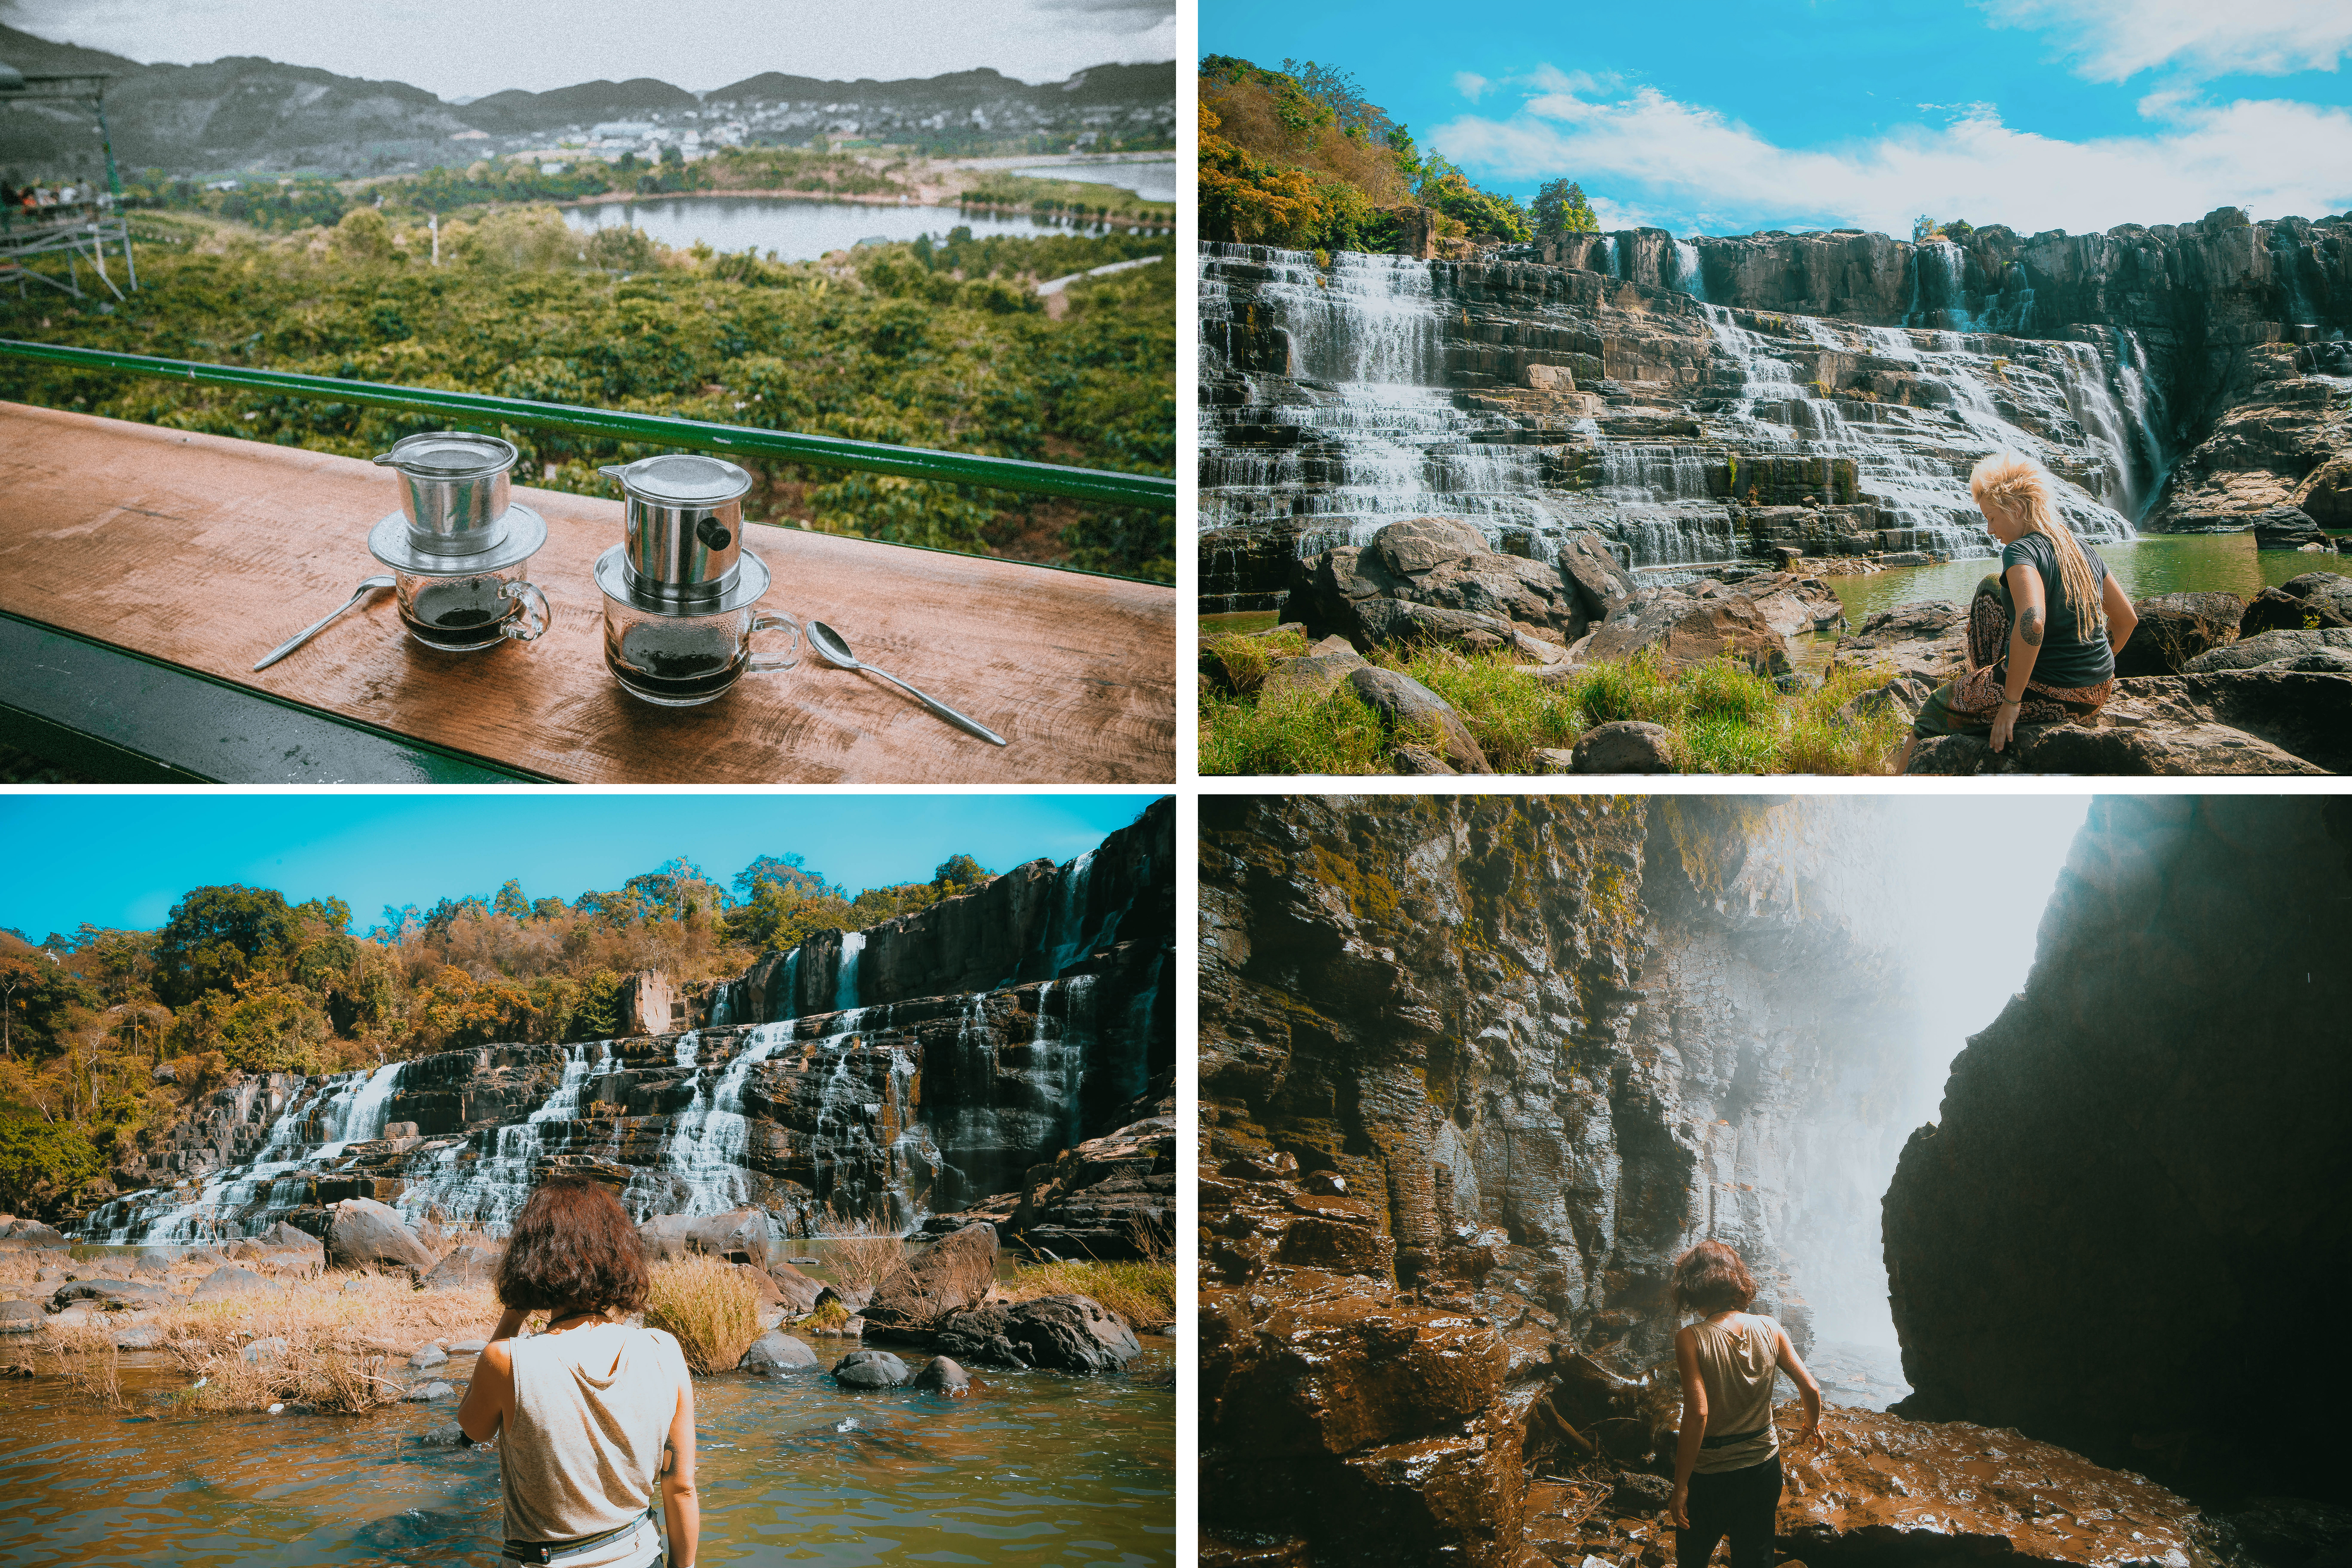 vietnam south east asia coffee plantation silk factory local people working green local culture exploring dalat coffee waterfalls